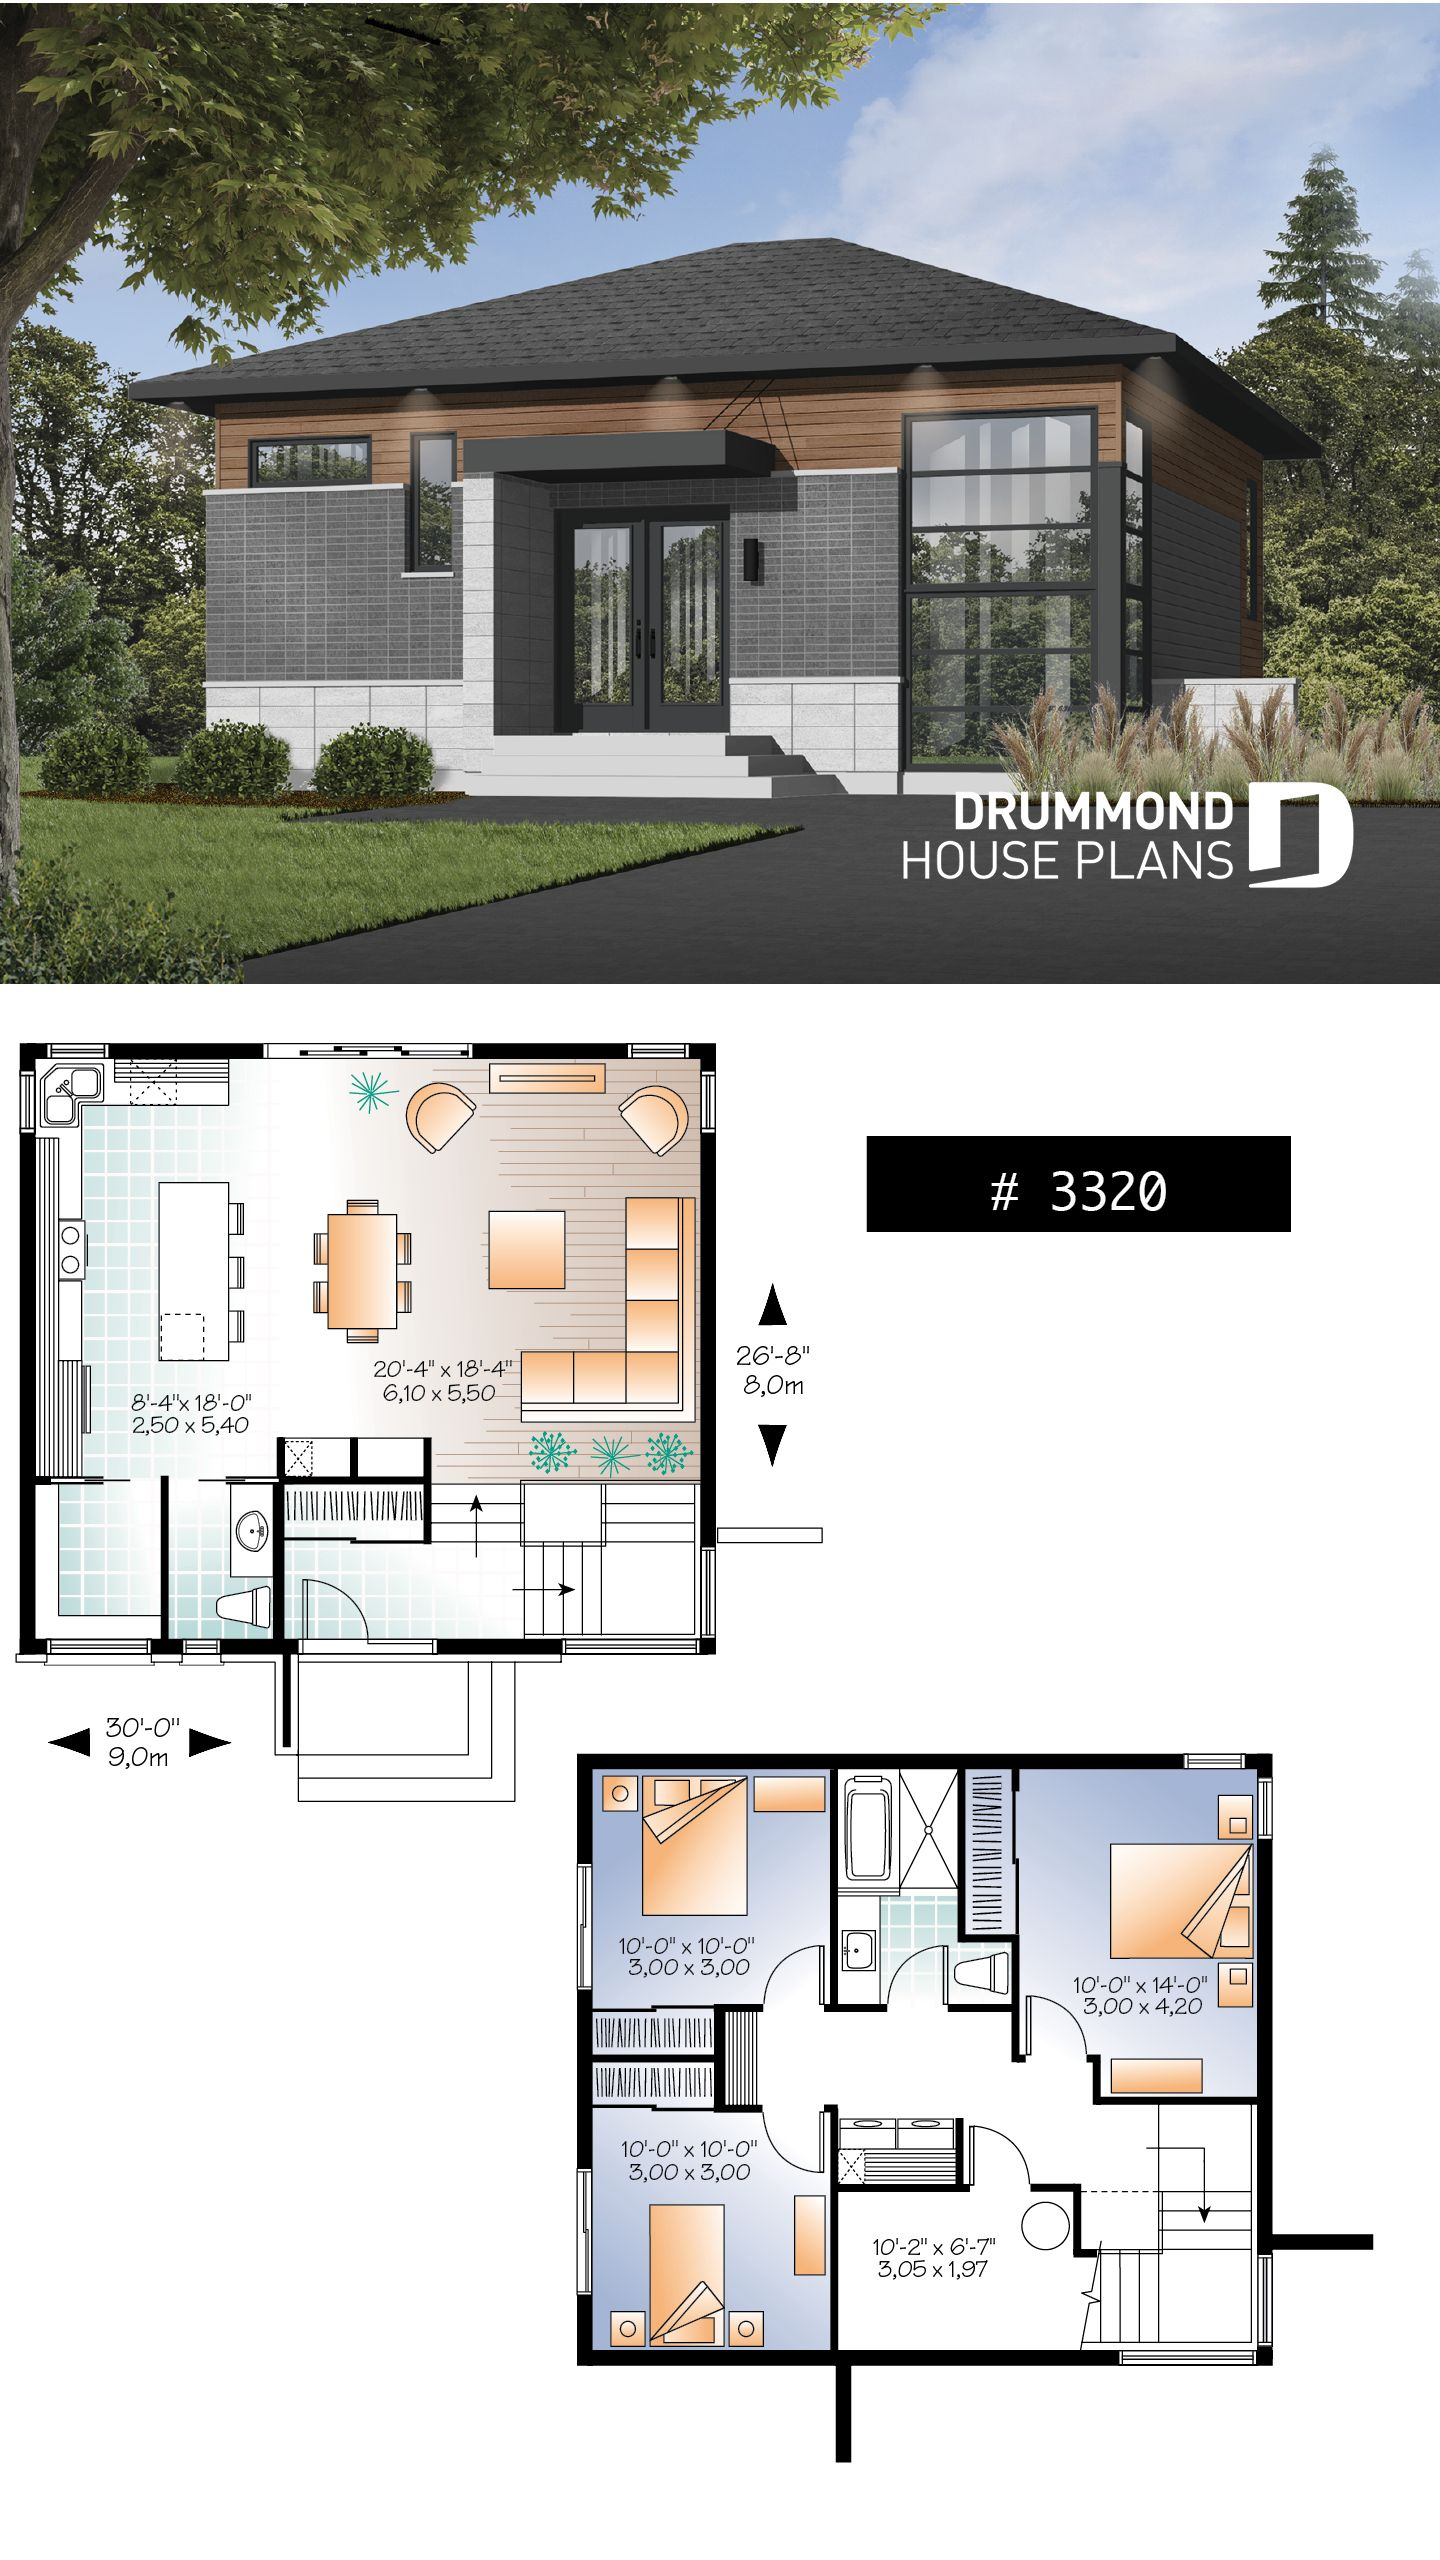 Discover The Plan 3320 Solana Which Will Please You For Its 3 Bedrooms And For Its Contemporary Styles House Blueprints Affordable House Plans Contemporary House Plans